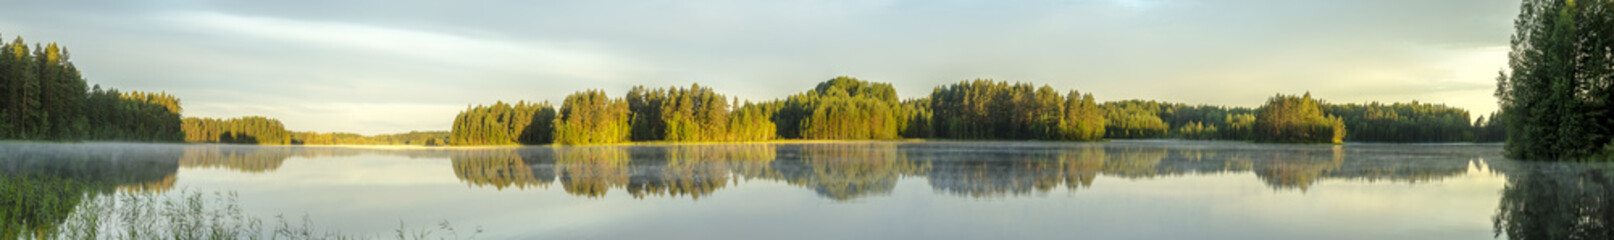 panorama view of the calm lake shore in Europe with fog, reflection of trees and greenery at dawn